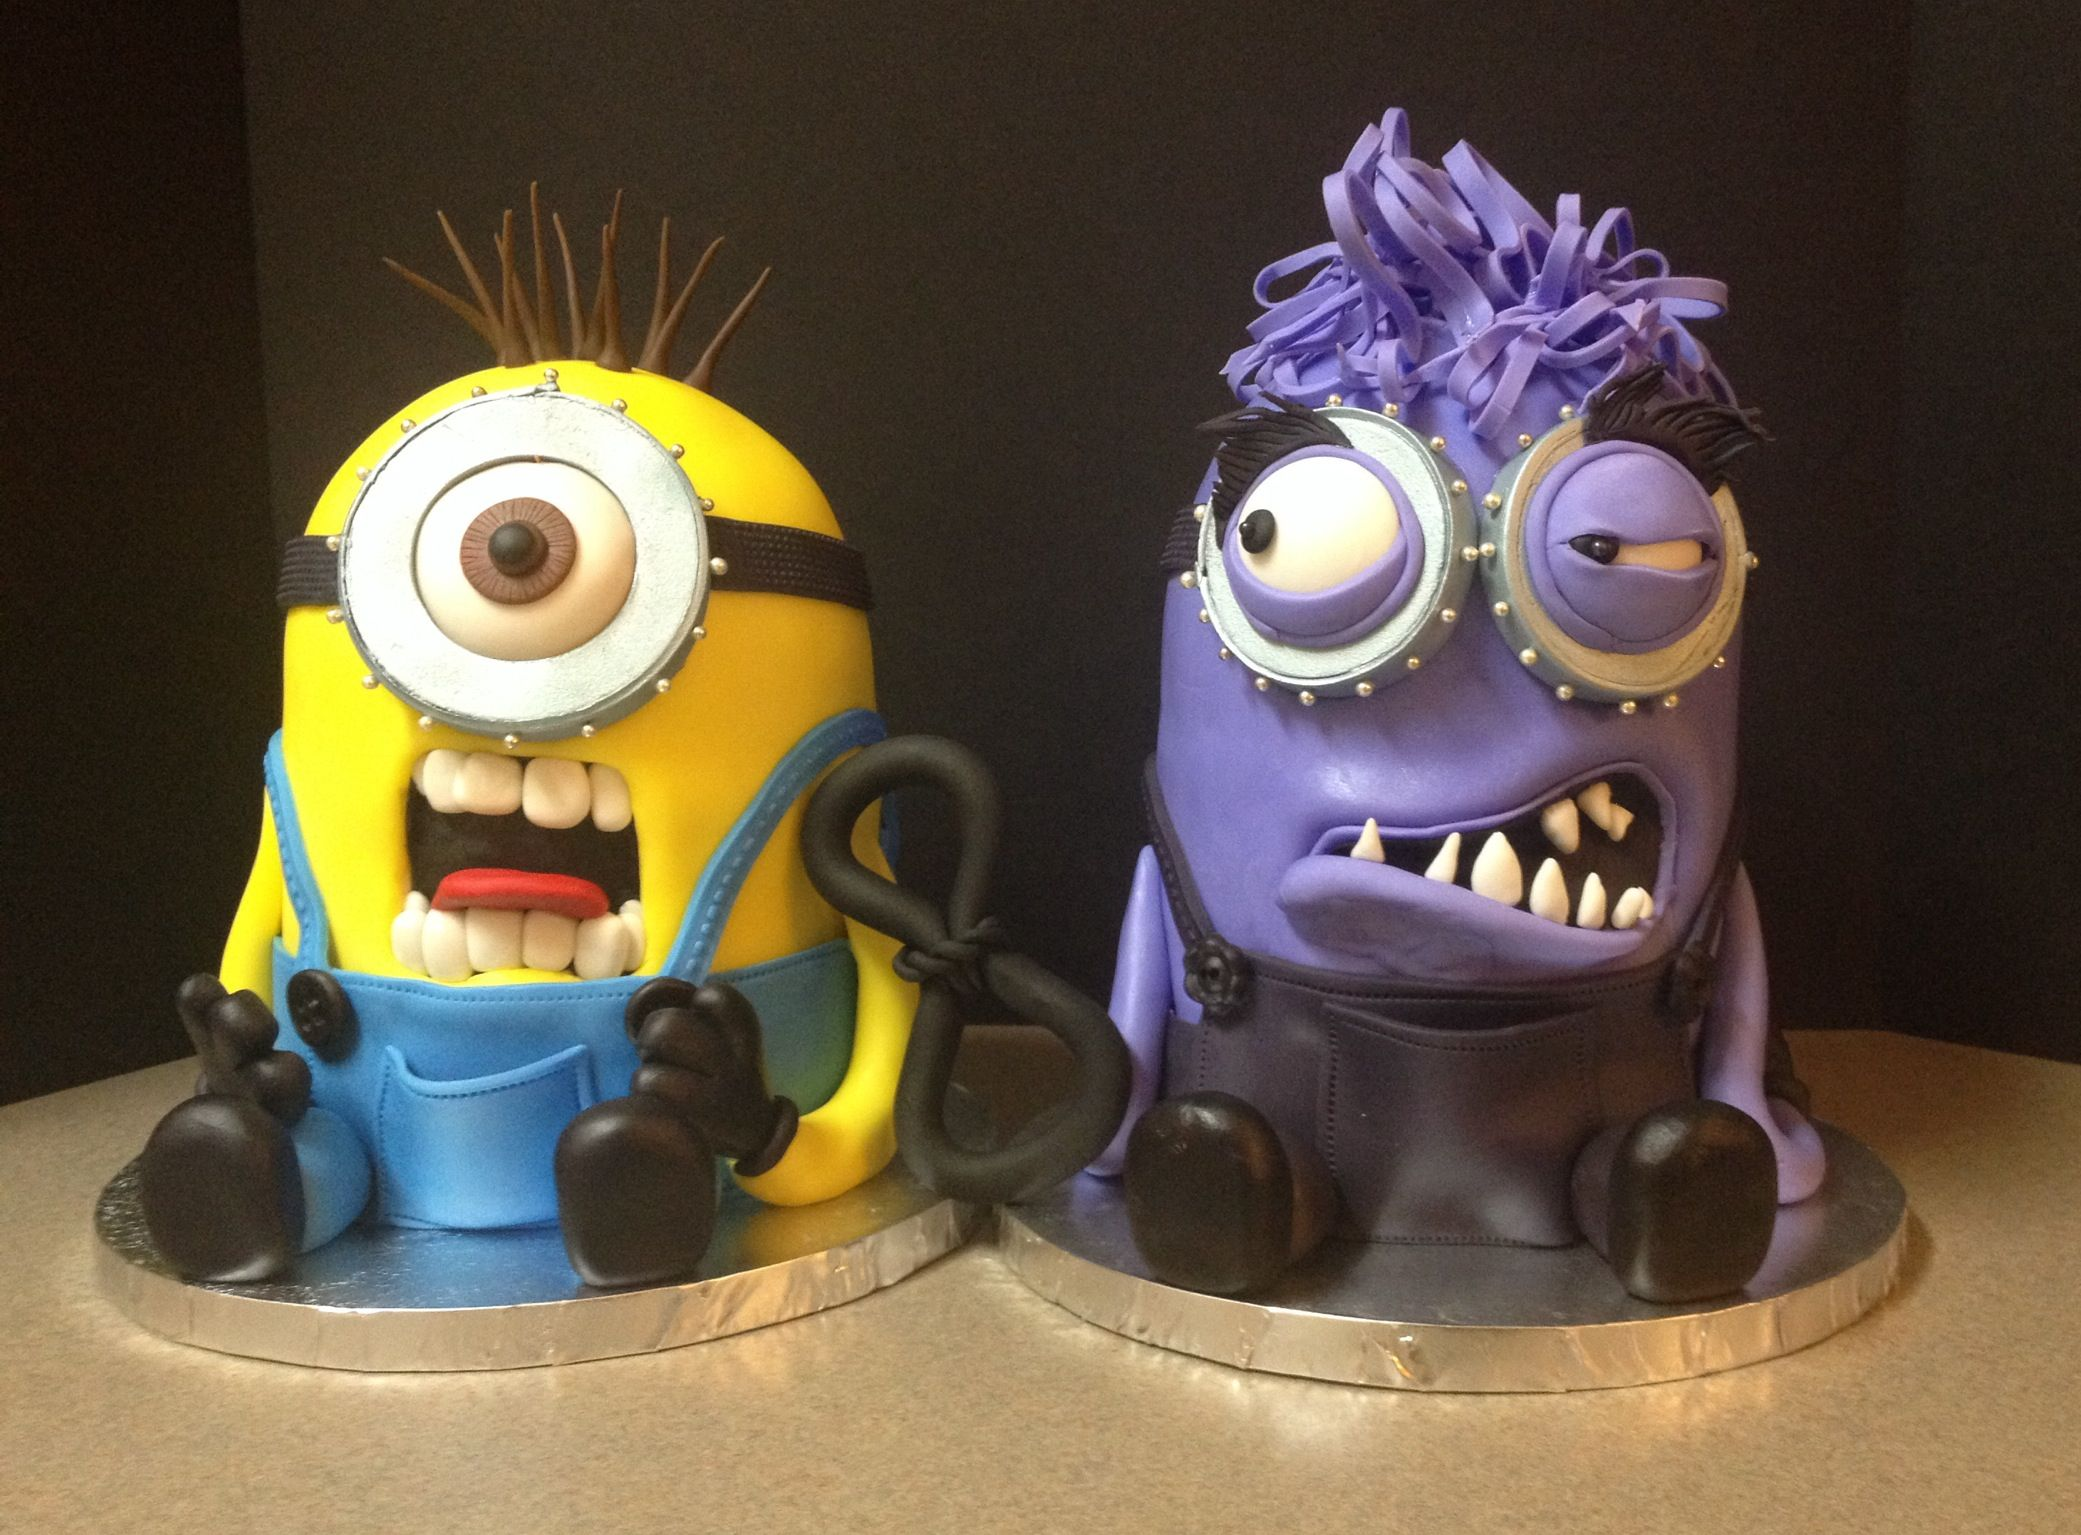 Minion Birthday Cakes For Twins Loved Making This One